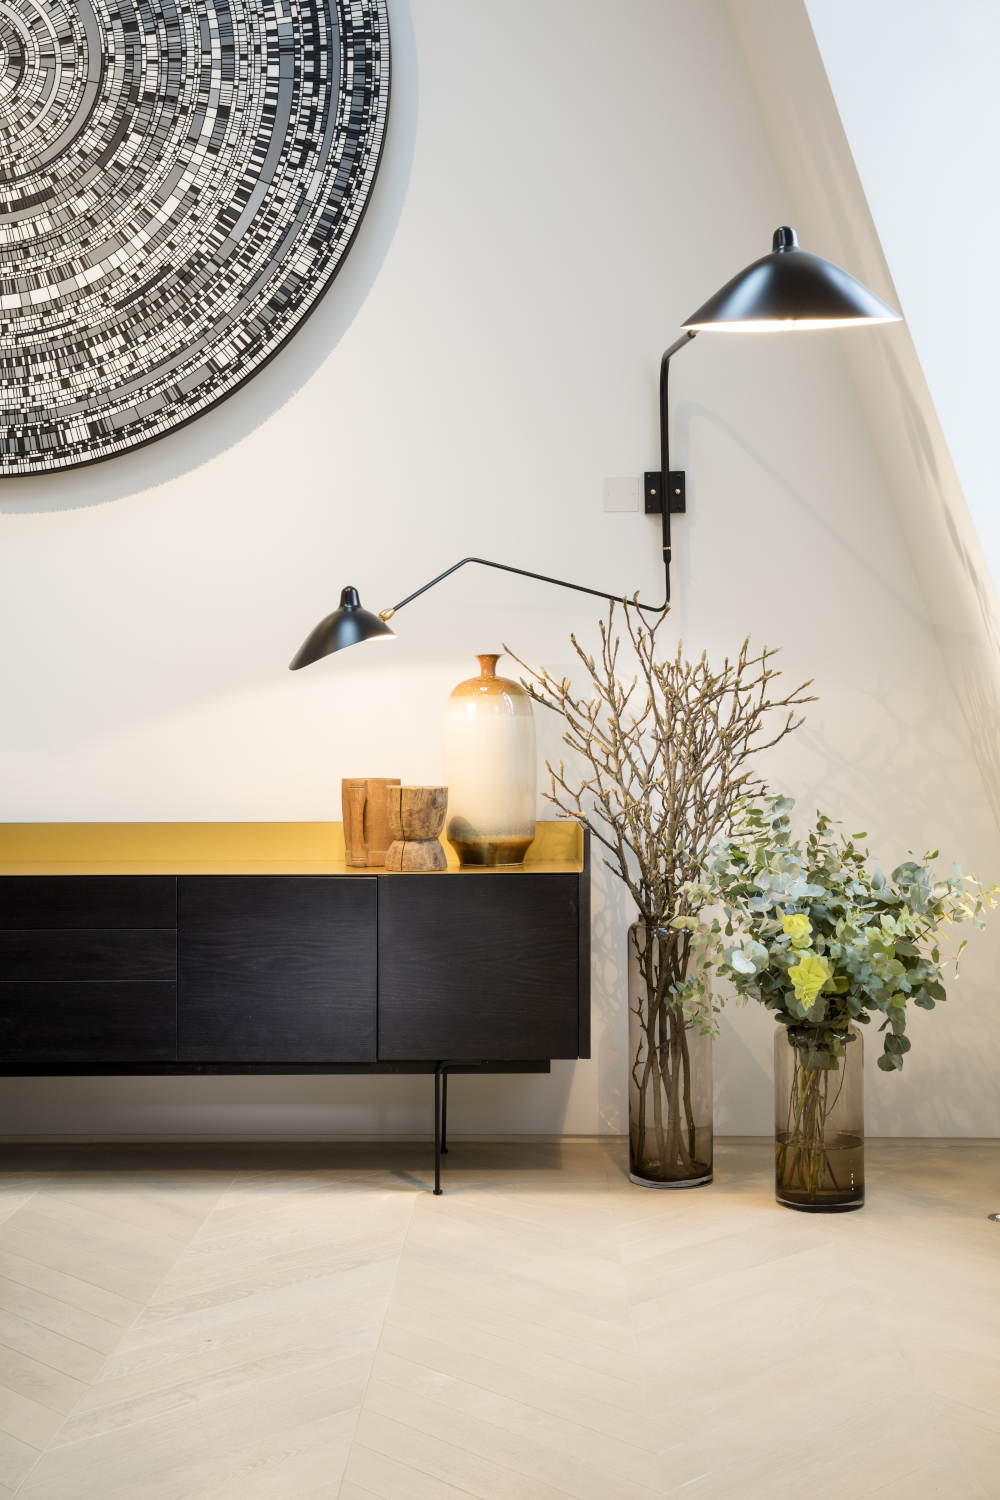 Image by Rolfe Judd Interiors